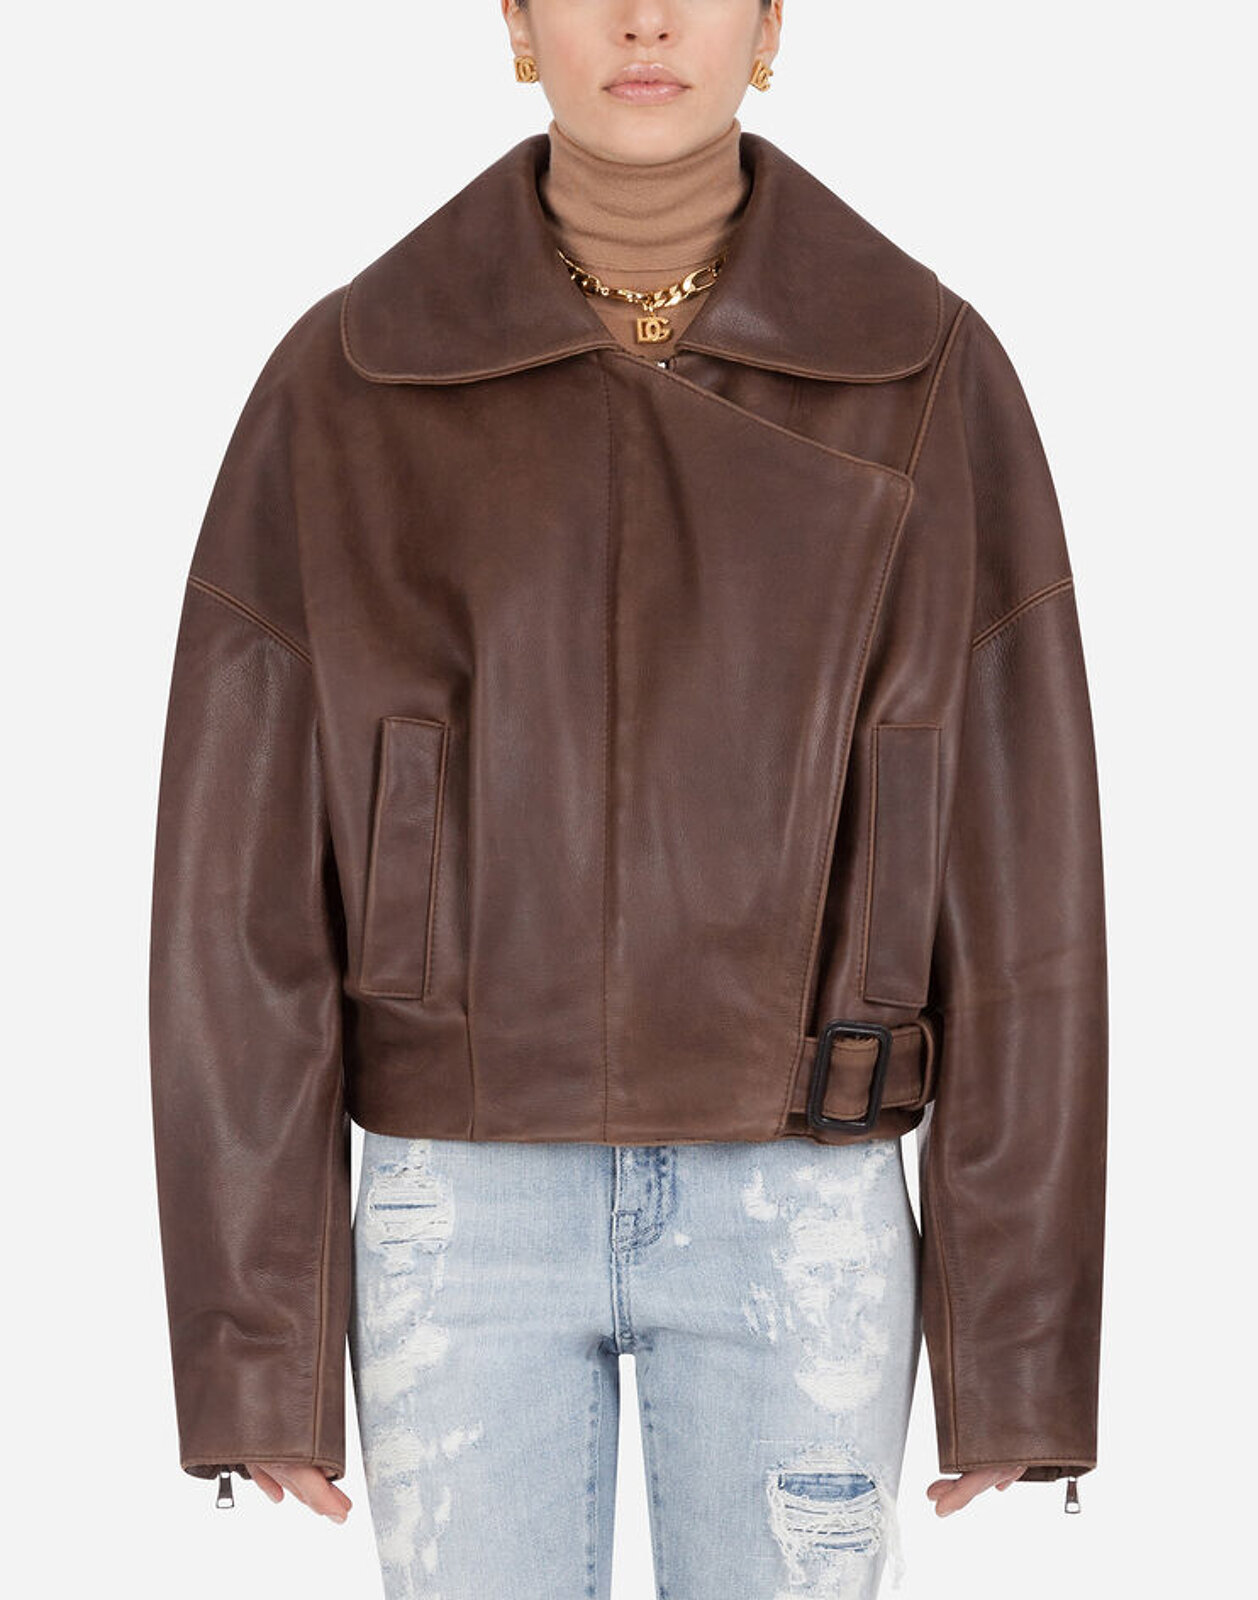 Hammered Nappa Leather Jacket - Dolce & Gabbana